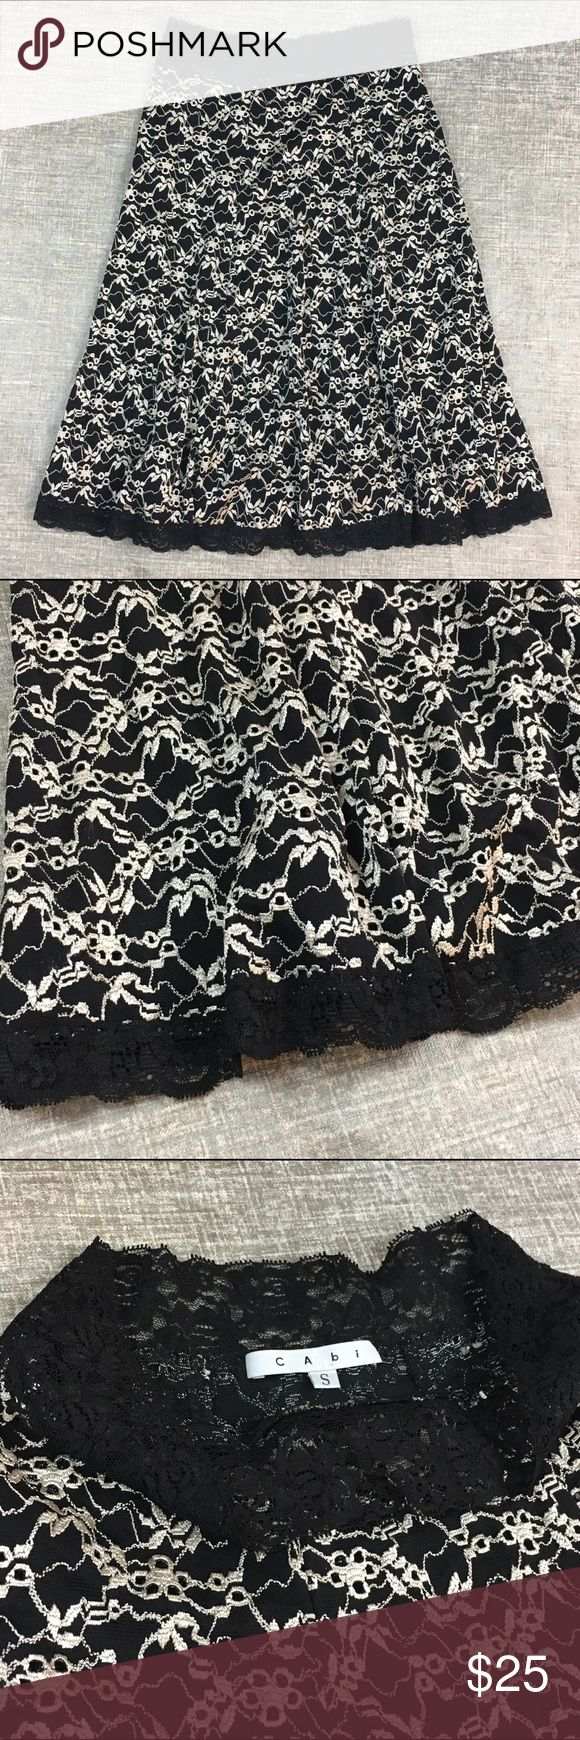 """CAbi Black White Lace Embroidered Floral Mid Skirt CAbi black & white lace fit and flare skirt. Black body with soft white embroidery details. Elastic stretch waistband with a skater flowy style. Excellent condition! No flaws. 26"""" waist and 24"""" length. CAbi Skirts Circle & Skater"""